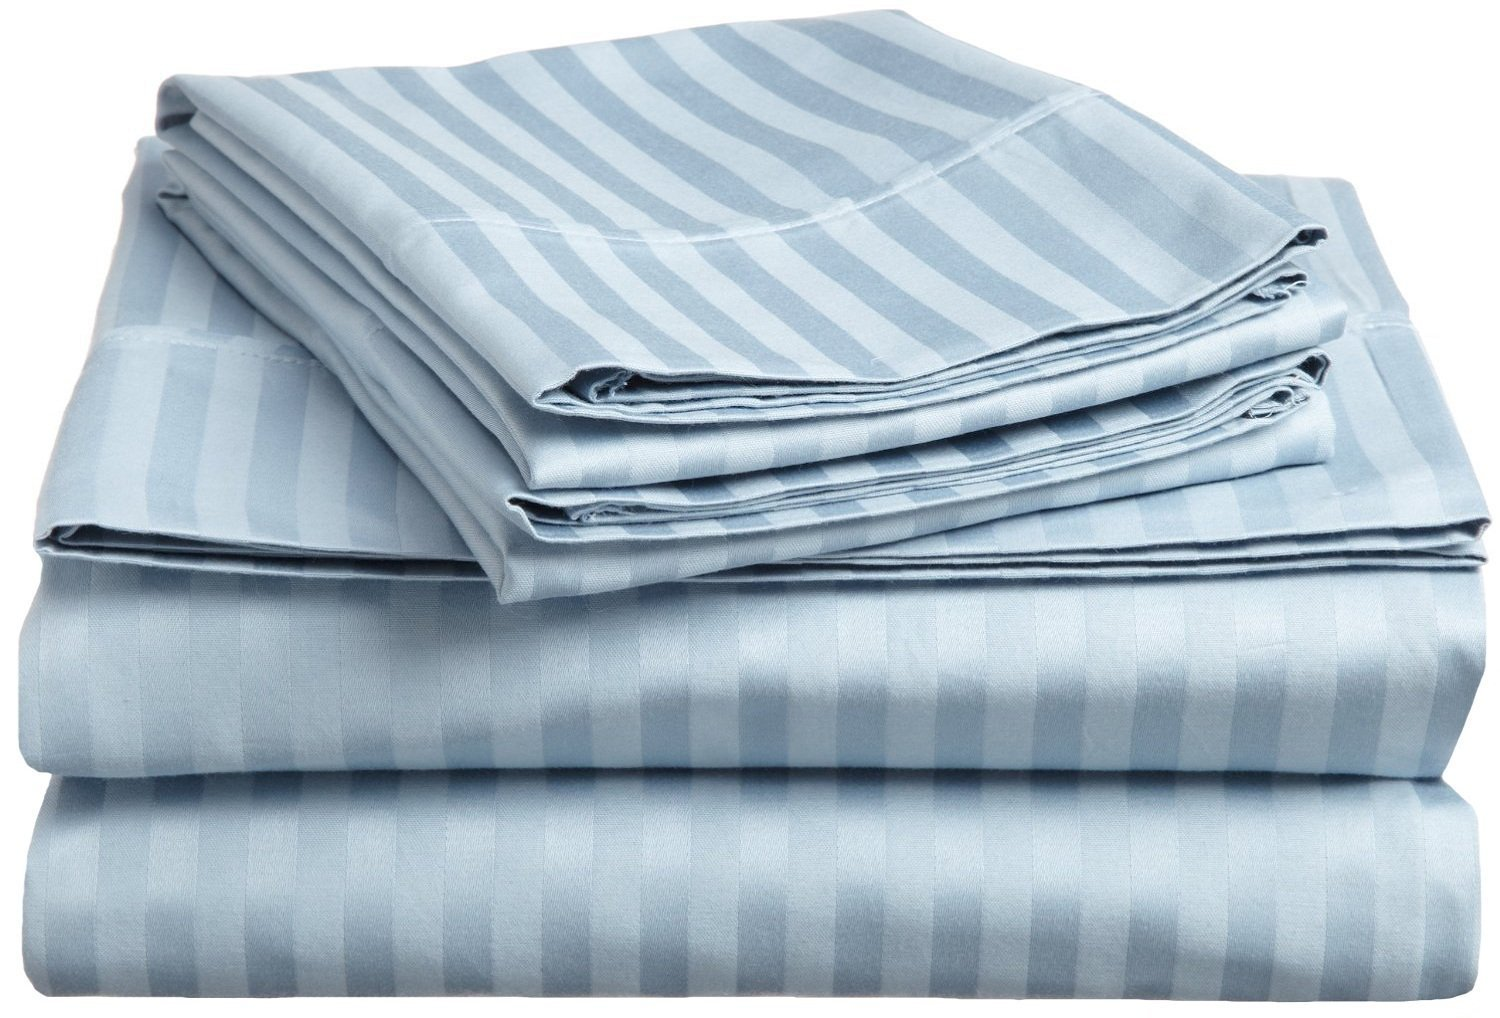 1000 Thread Count Nicely Fab RV Short Queen ( Size ) 100% Egyptian Cotton Flat / Top Sheet With Extra 2 PC Pillow Cases All Heavy Colors Striped ( Light Blue ) By Galaxy's Linen